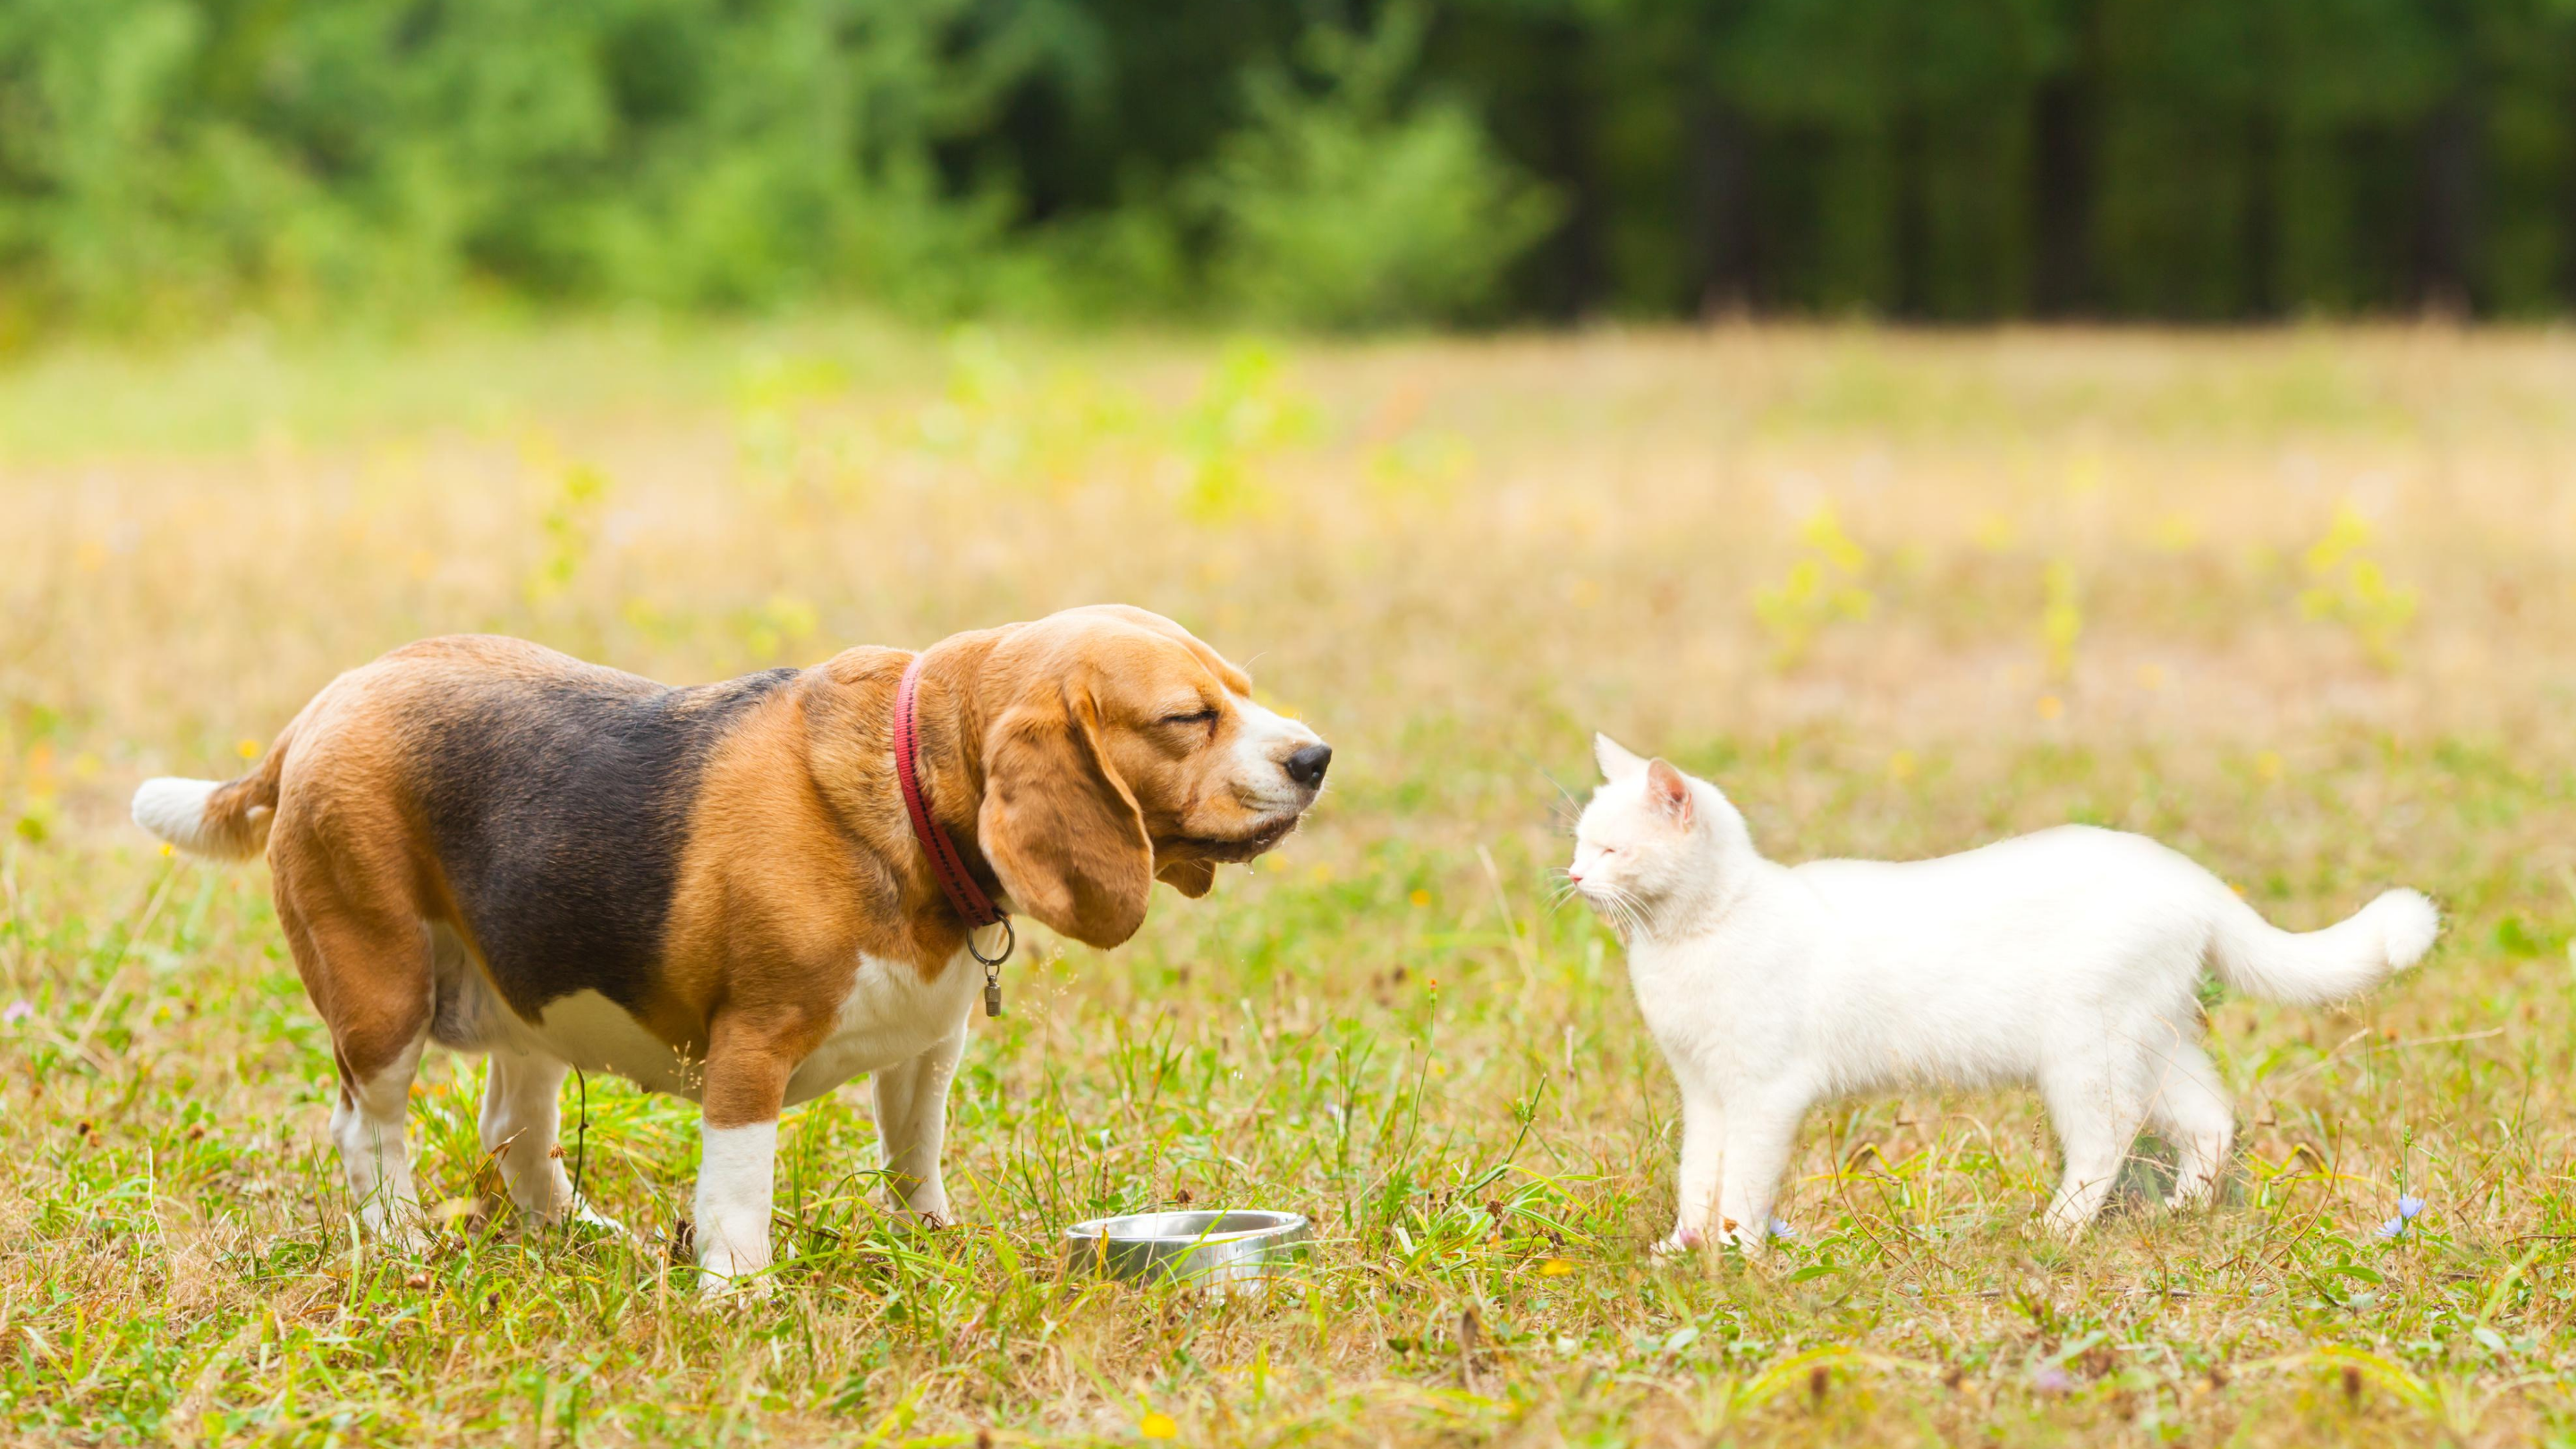 A beagle and a cat look at one another, standing in green grass